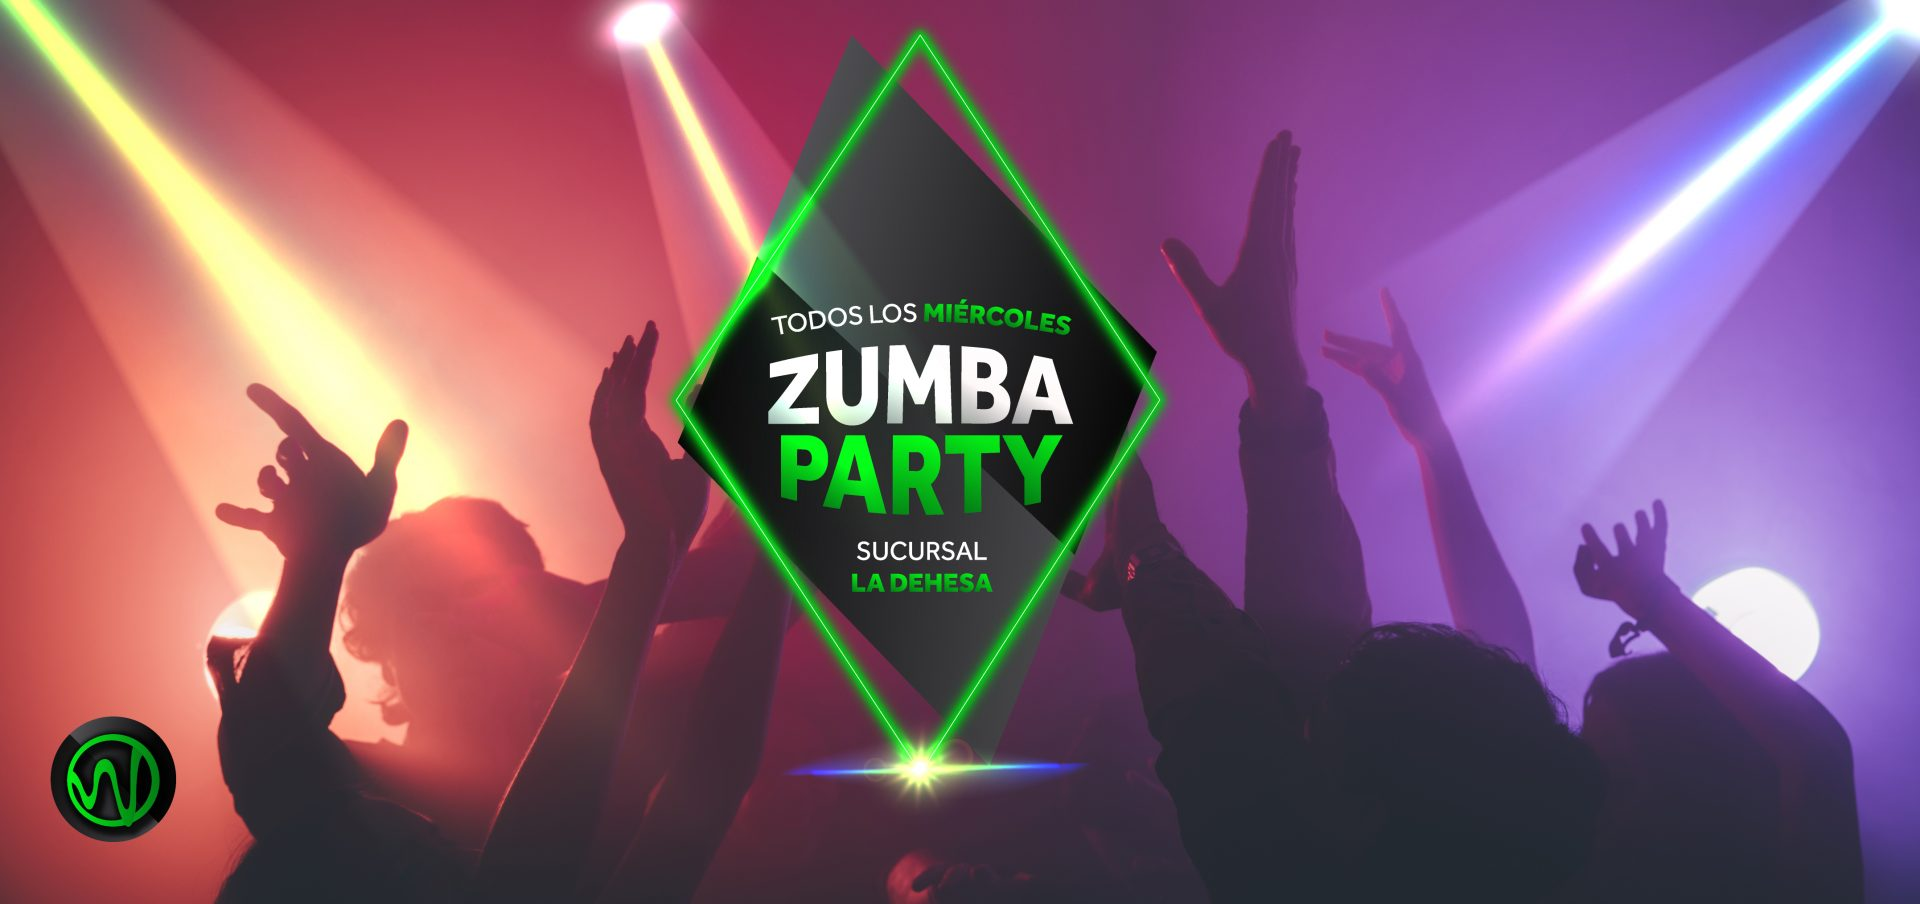 ZUMBA-PARTY-banner